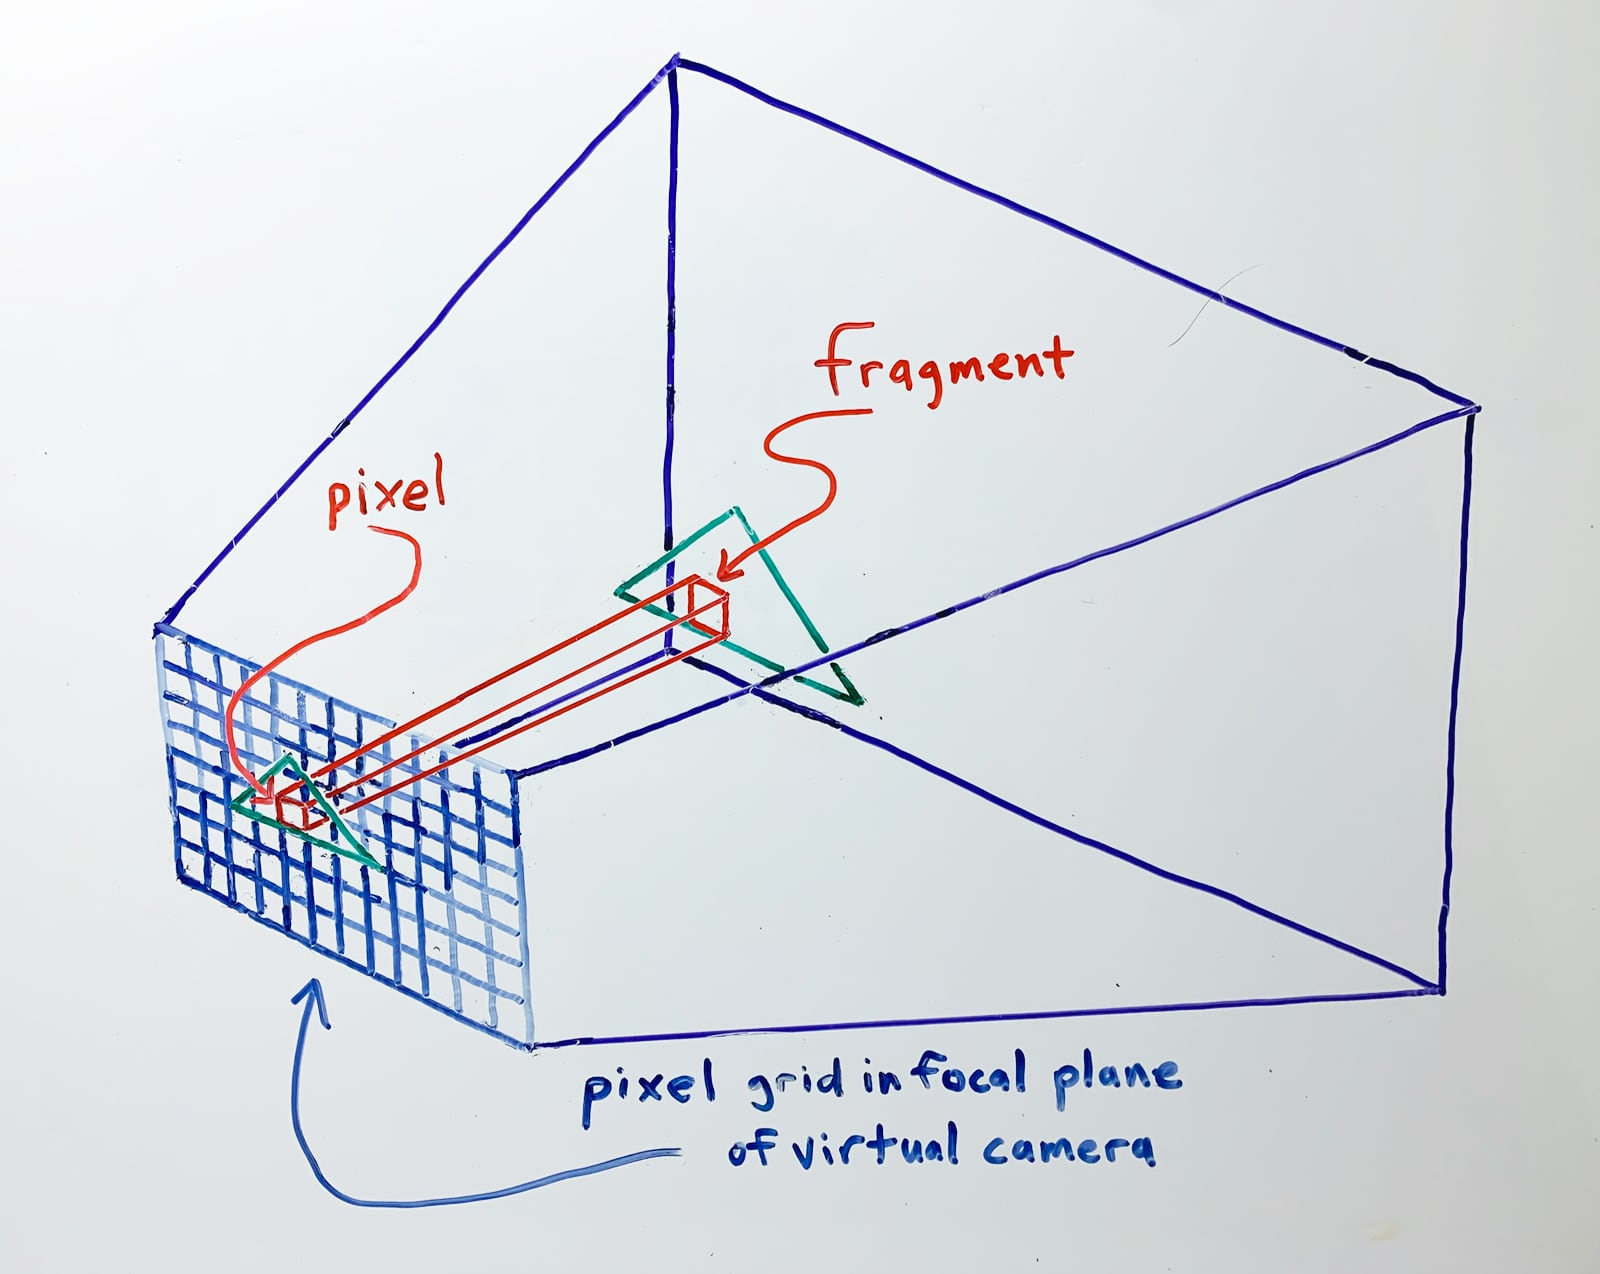 A fragment is a part of a triangle that maps to one pixel on screen